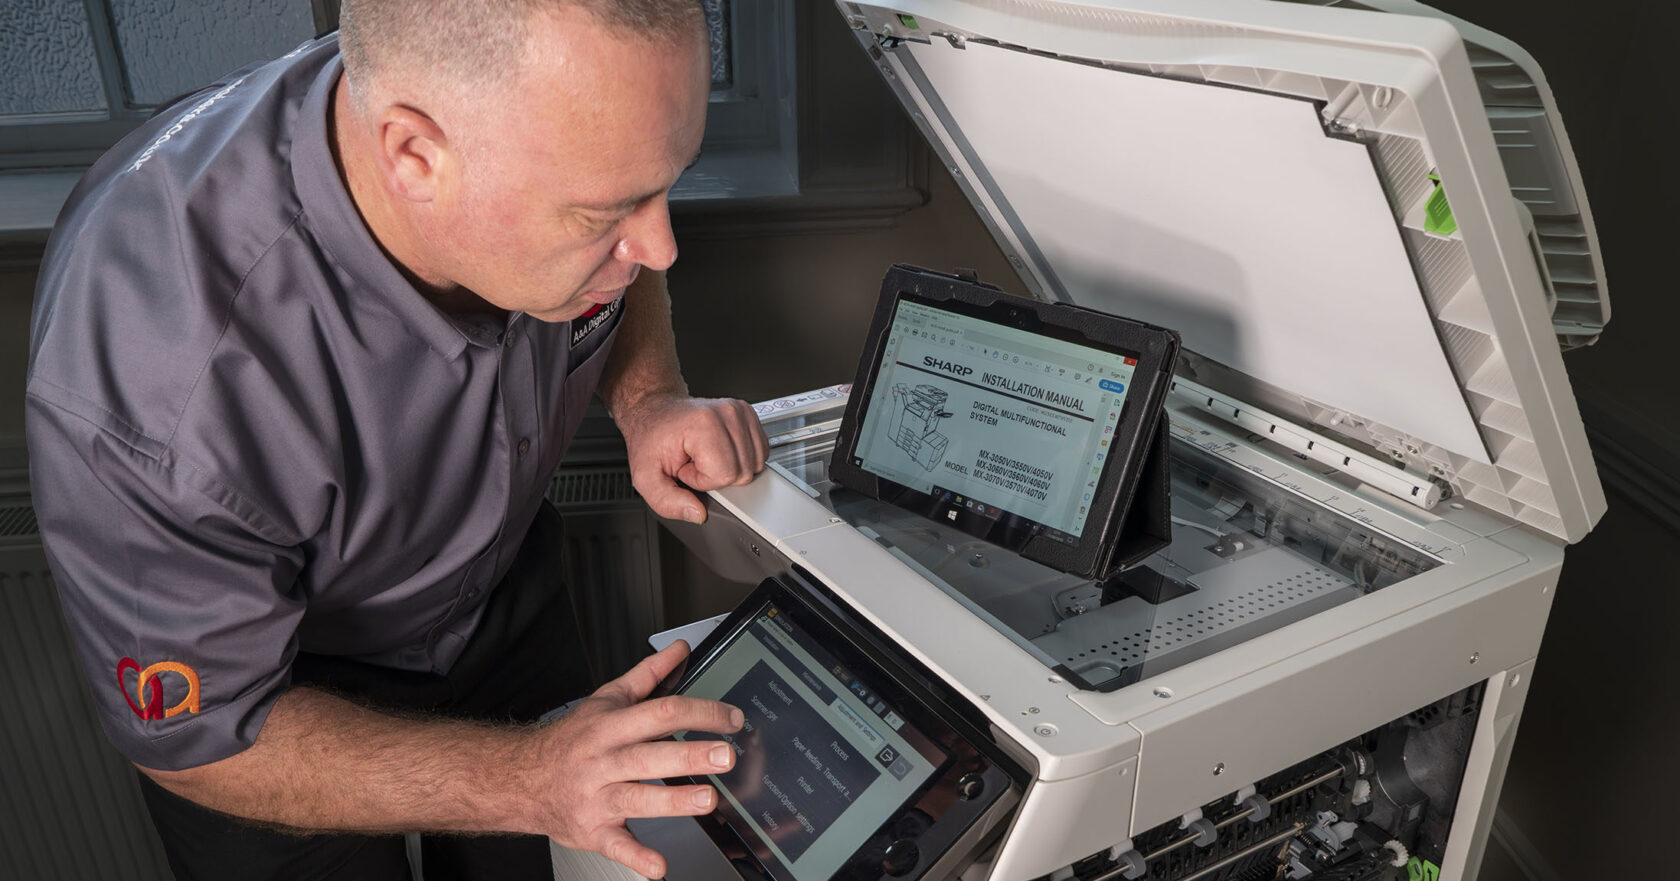 Our Services. Photocopier and printer service and repairs